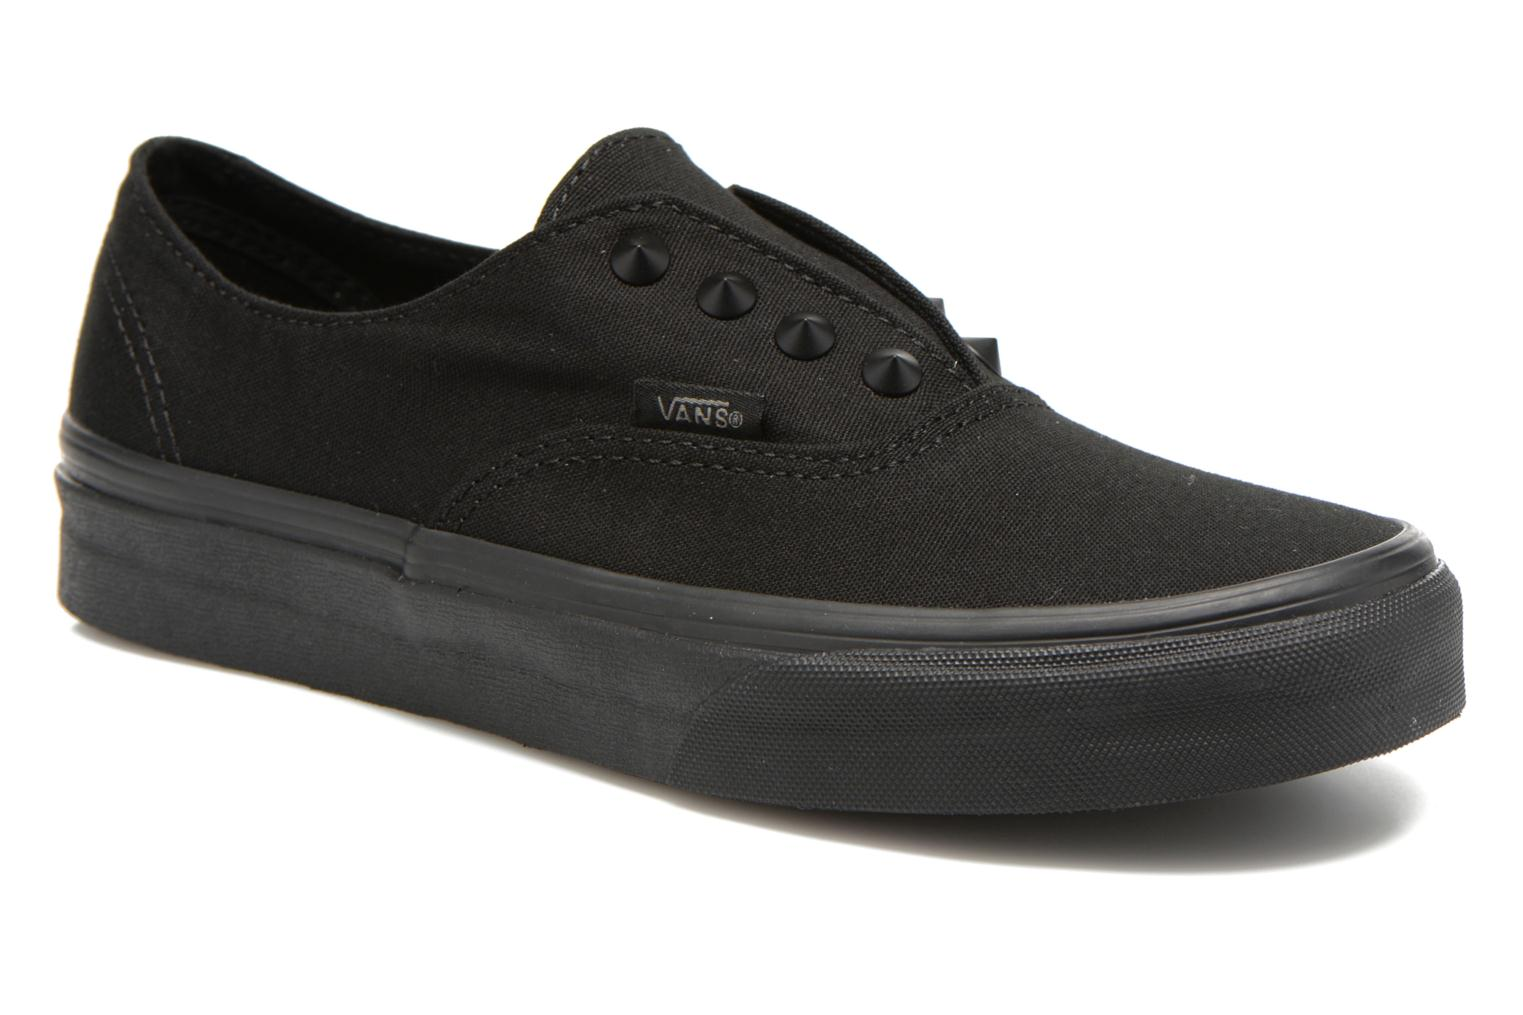 Authentic Gore W (Studs) black/black